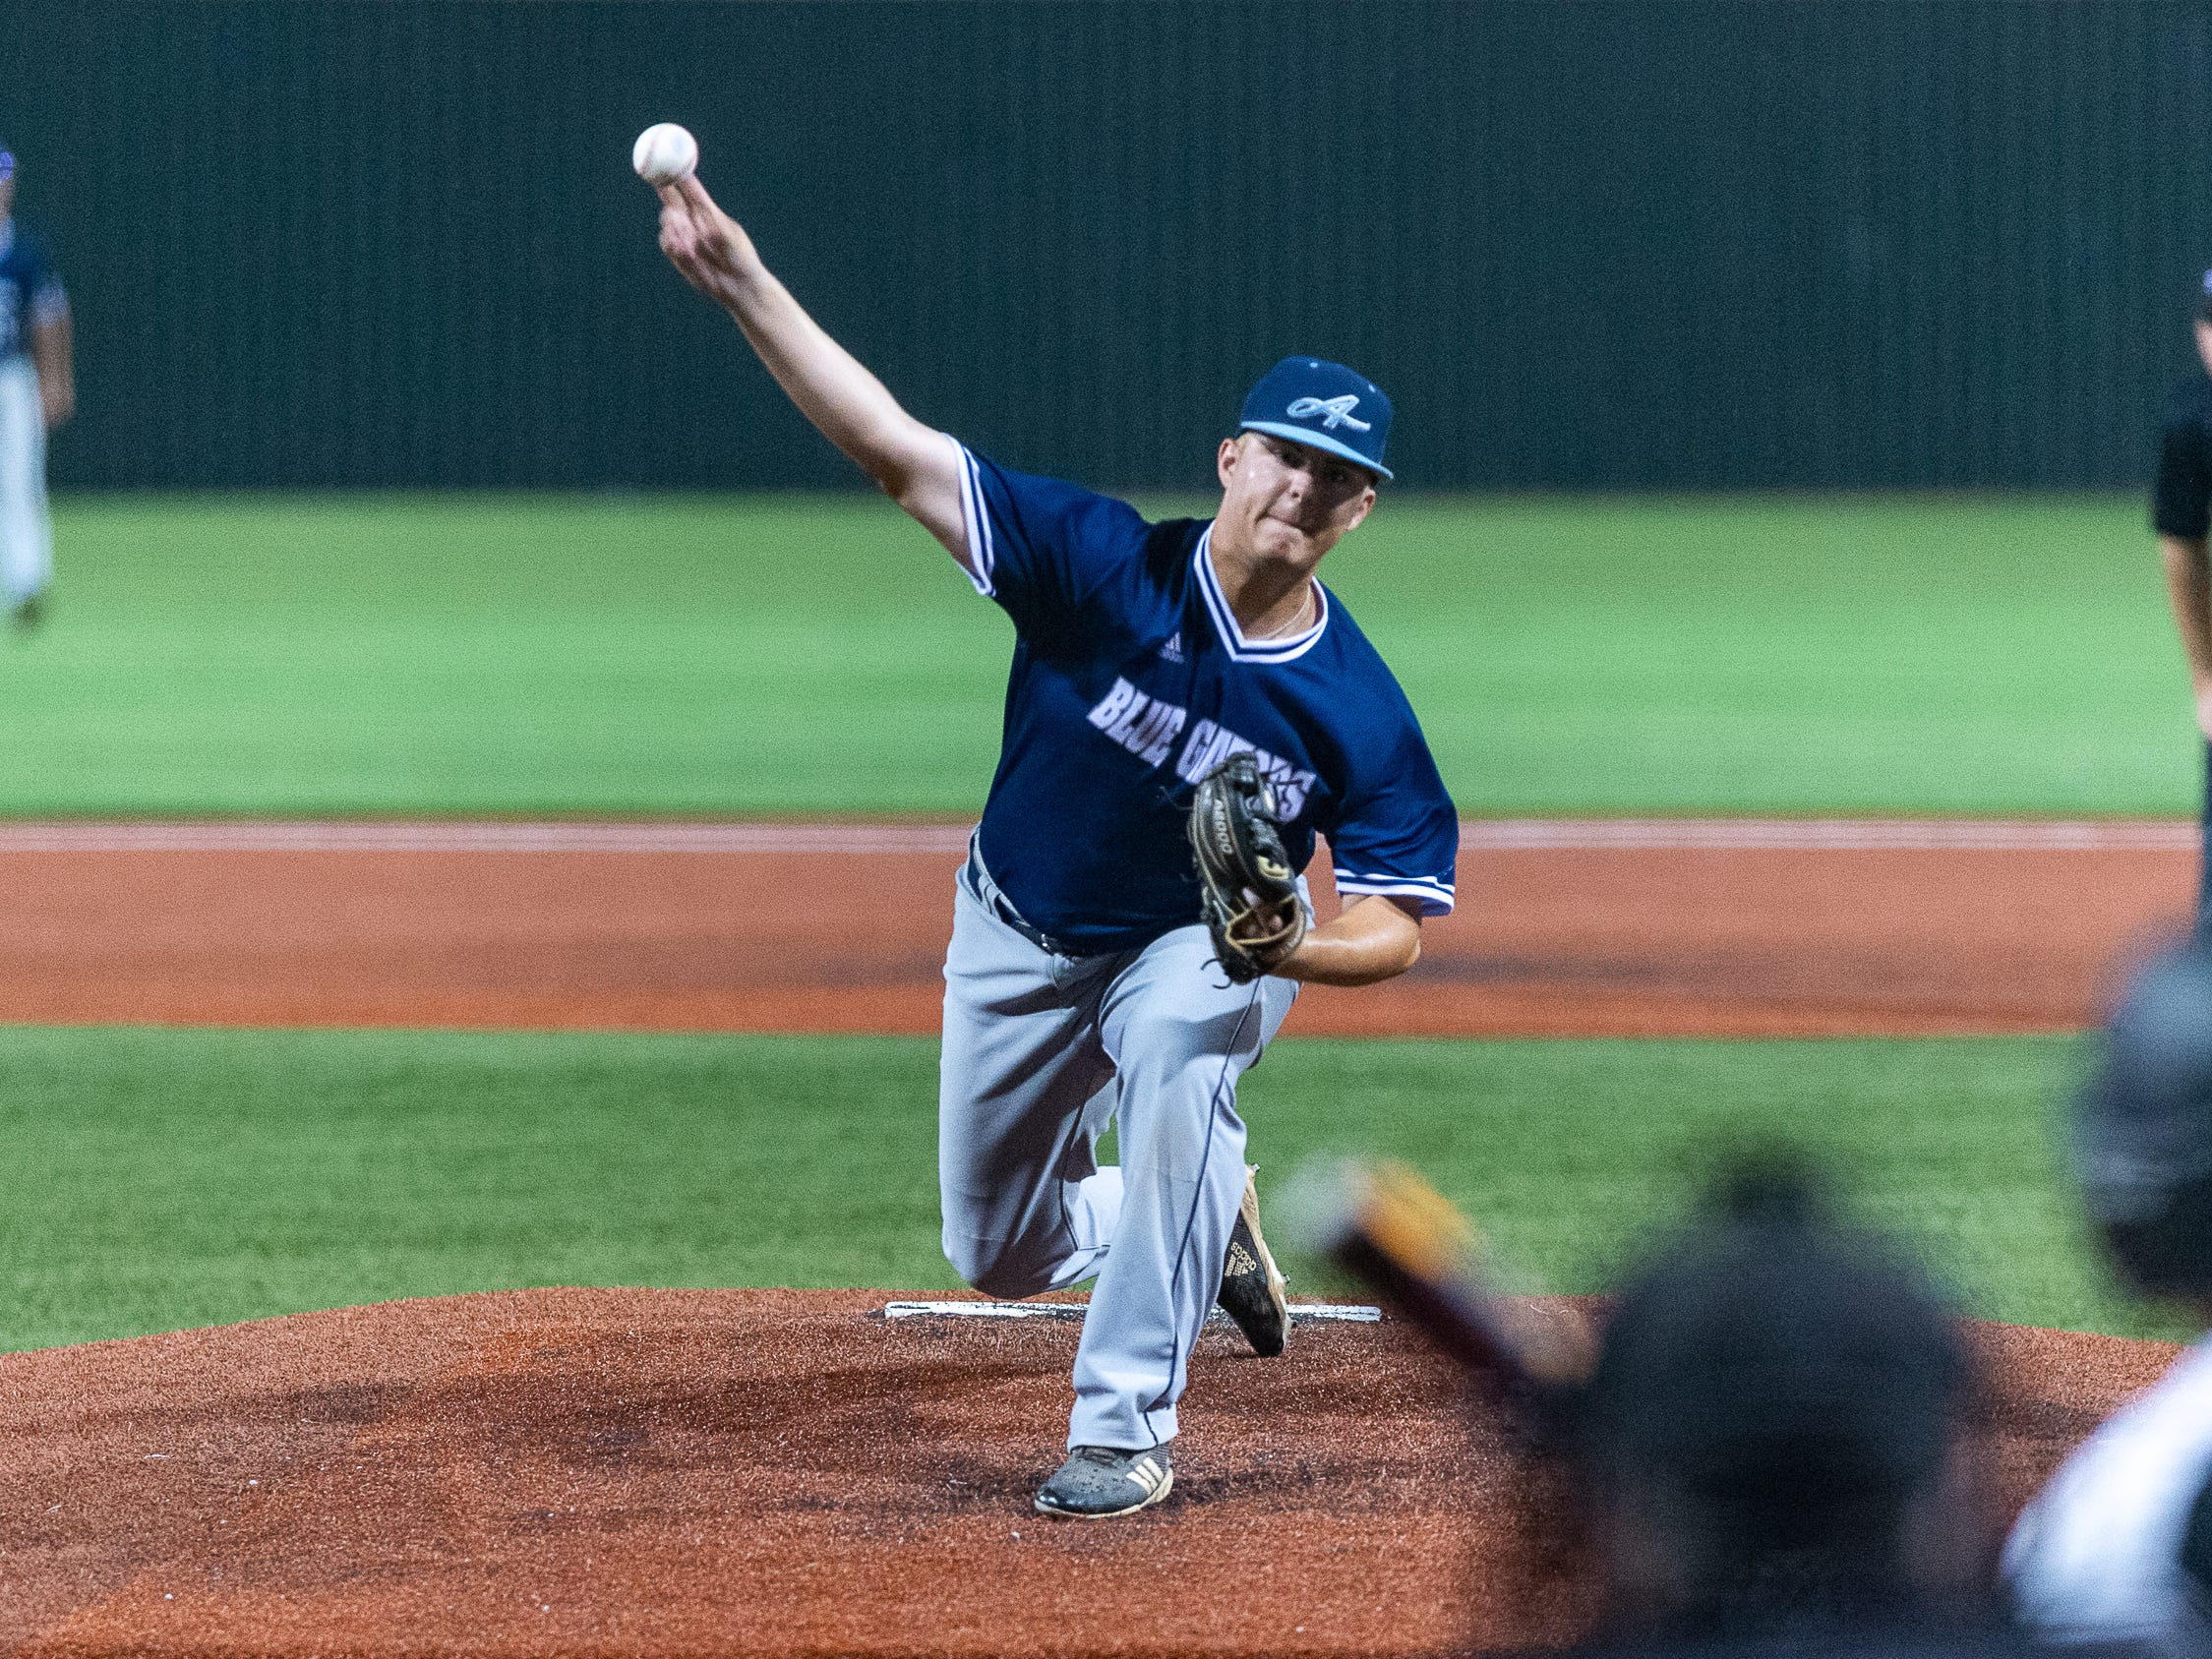 Starting pitcher Sean Michael Brady on the mound as Ascension Episcopal takes on St. Thomas Aquinas in the semi final round at the LHSAA State Championship. Wednesday, May 8, 2019.